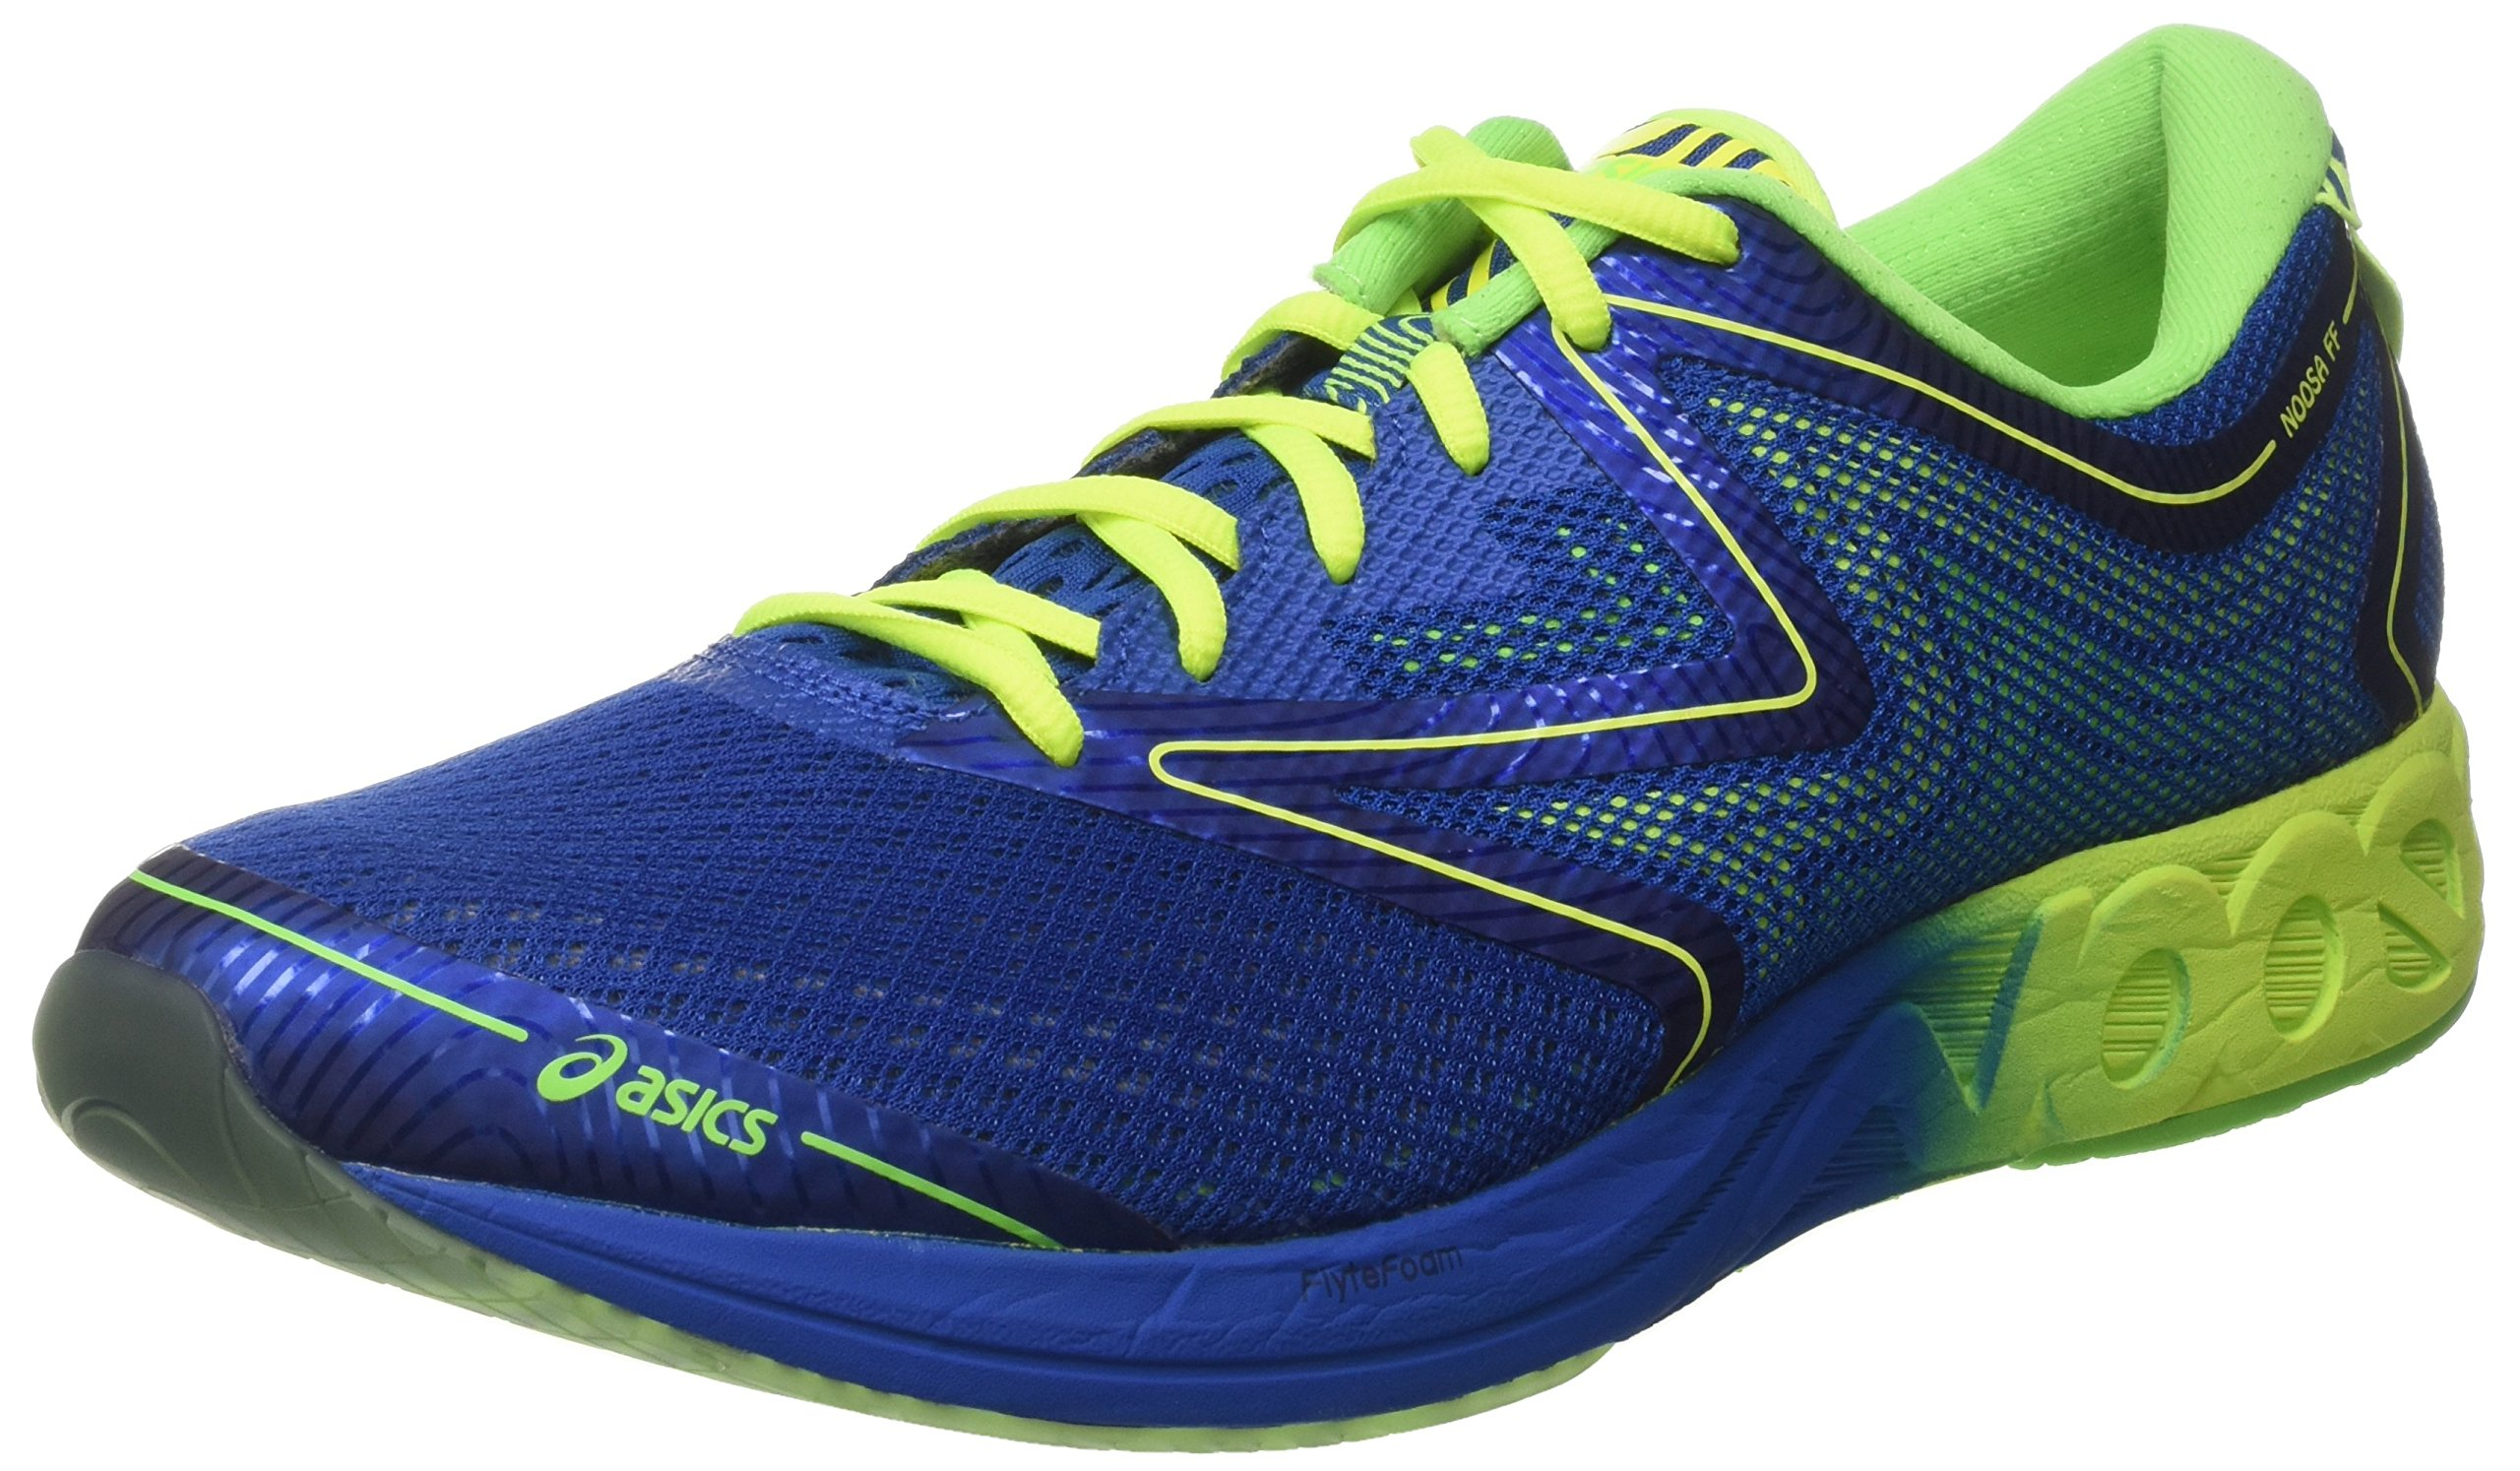 Noosa Running FfChaussures green Asics HommeMulticoloreimperial Eu Yellow De safety Gecko46 dBeCxo